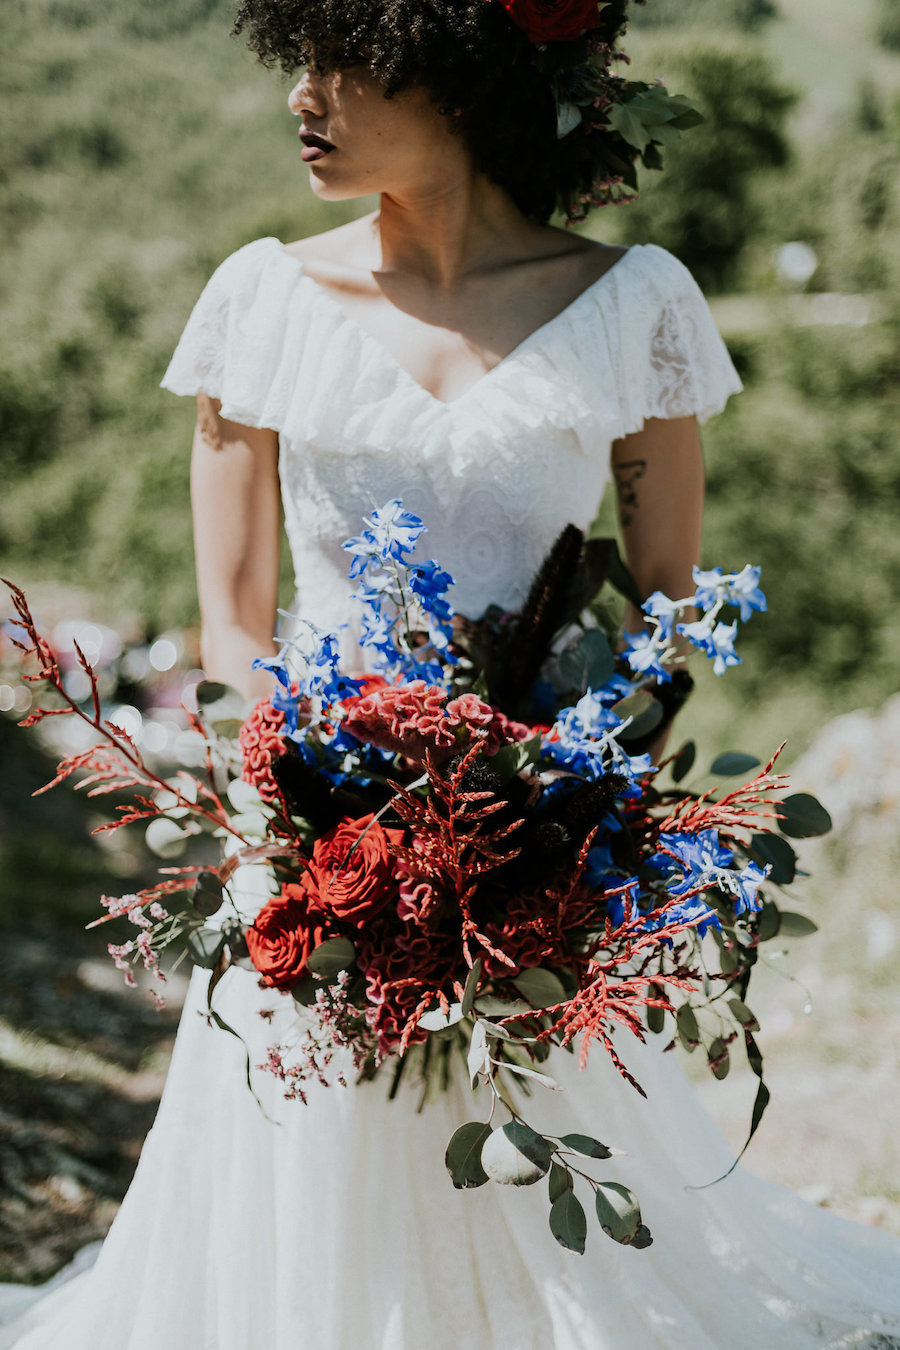 Matrimonio Bohemien Queen : Ispirazione boho in montagna wedding wonderland